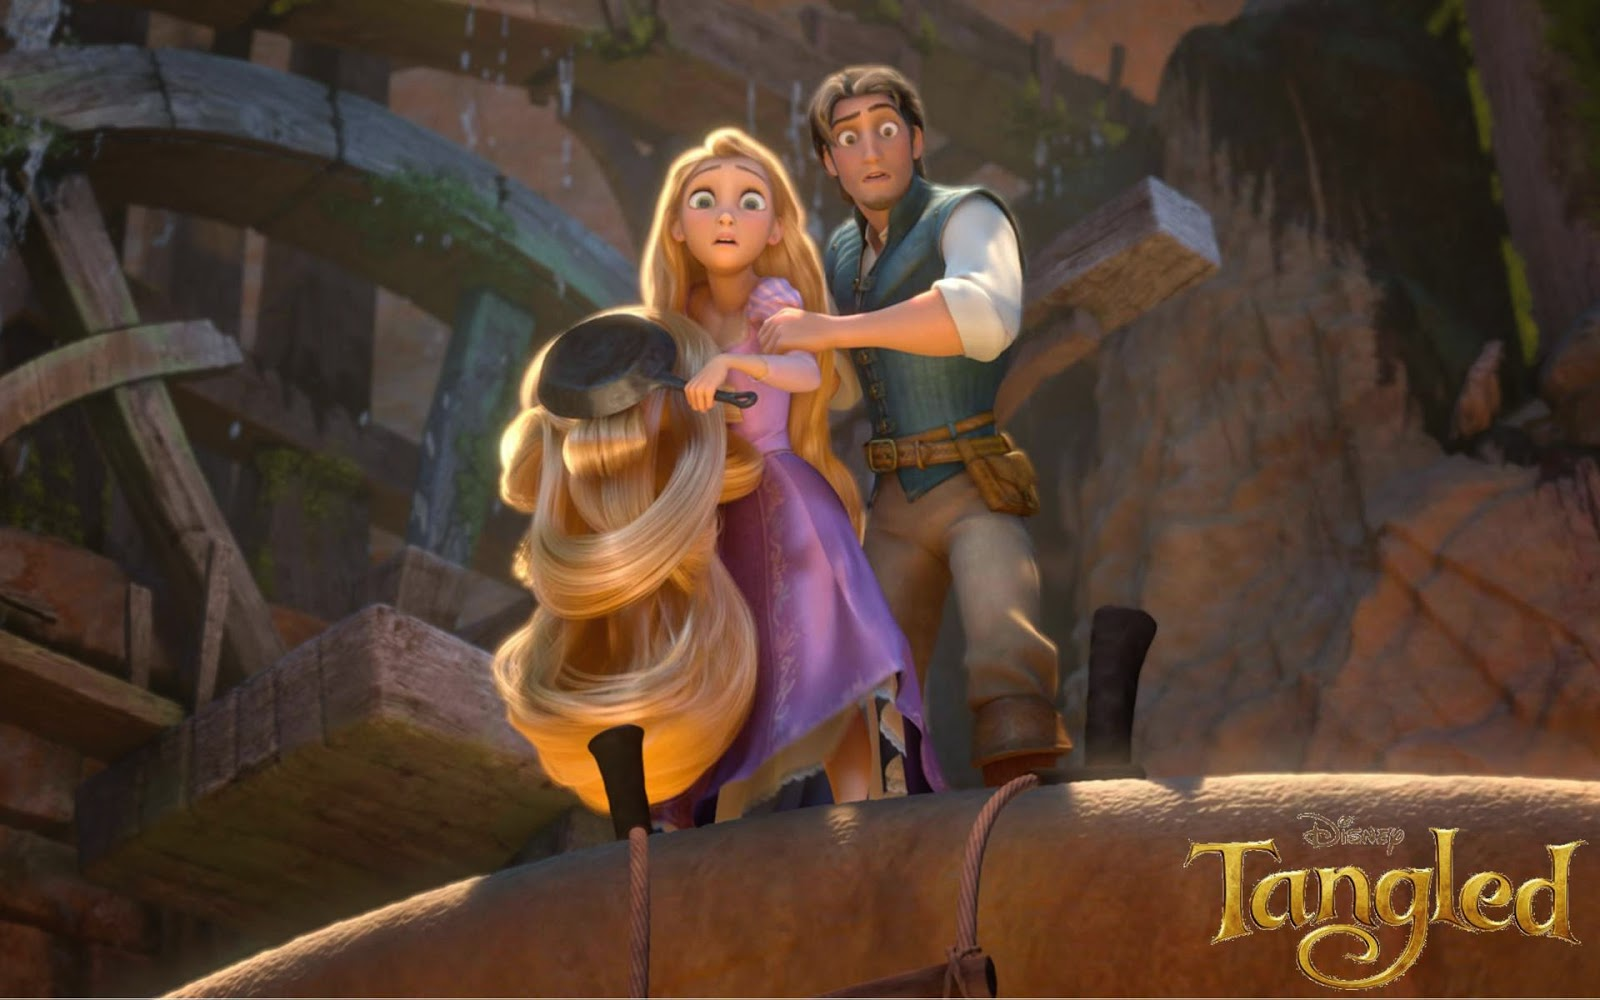 Free desktop wallpaper disney tangled wallpaper - Tangled wallpaper ...